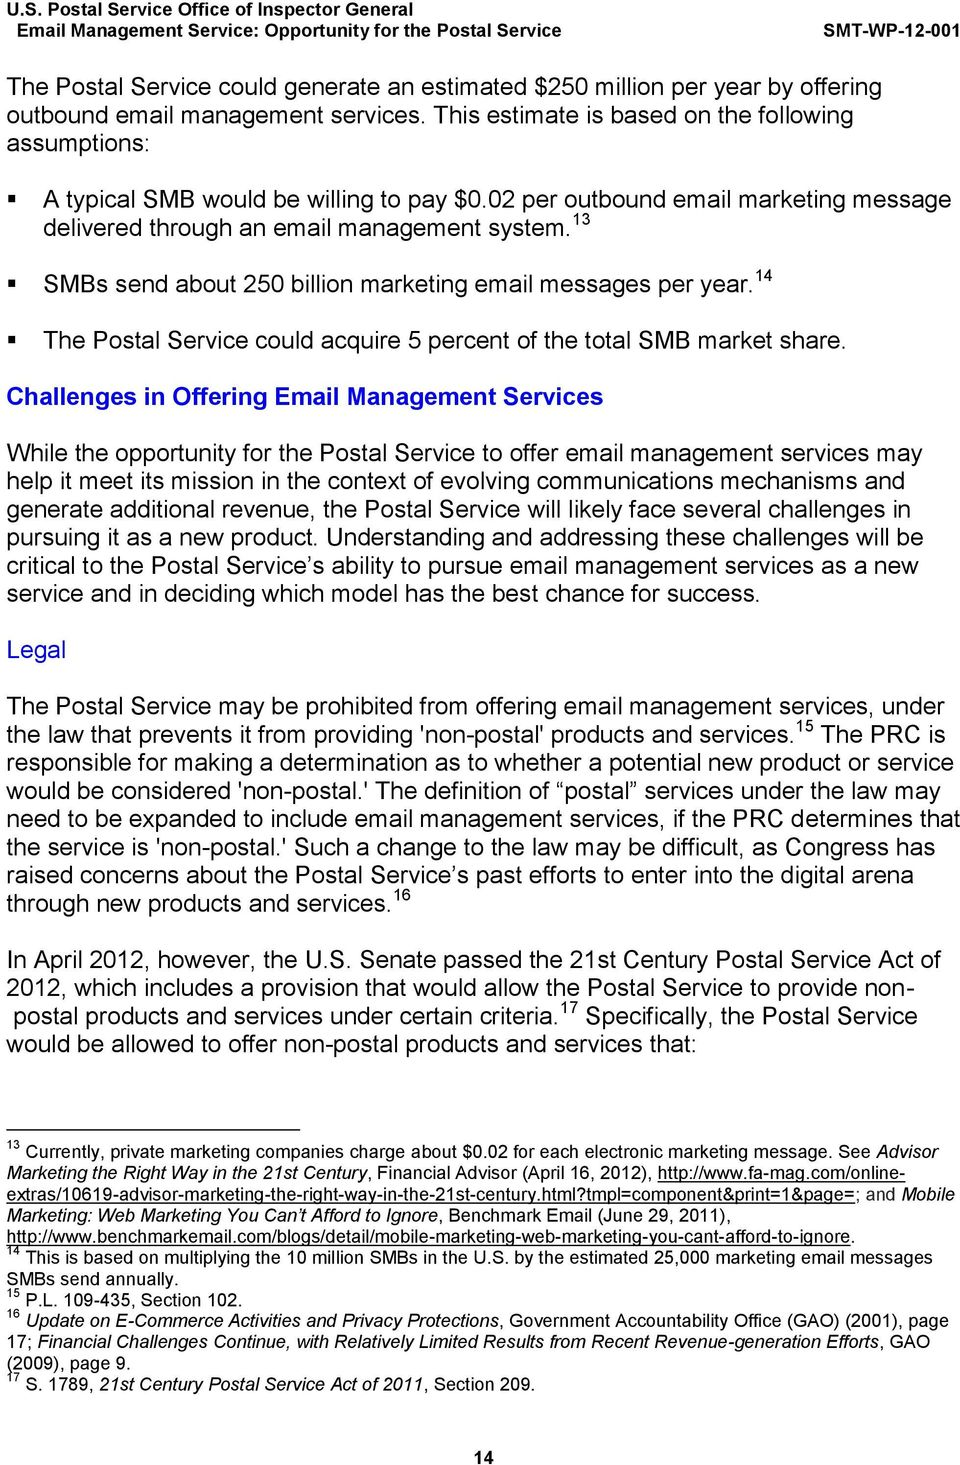 13 SMBs send about 250 billion marketing email messages per year. 14 The Postal Service could acquire 5 percent of the total SMB market share.